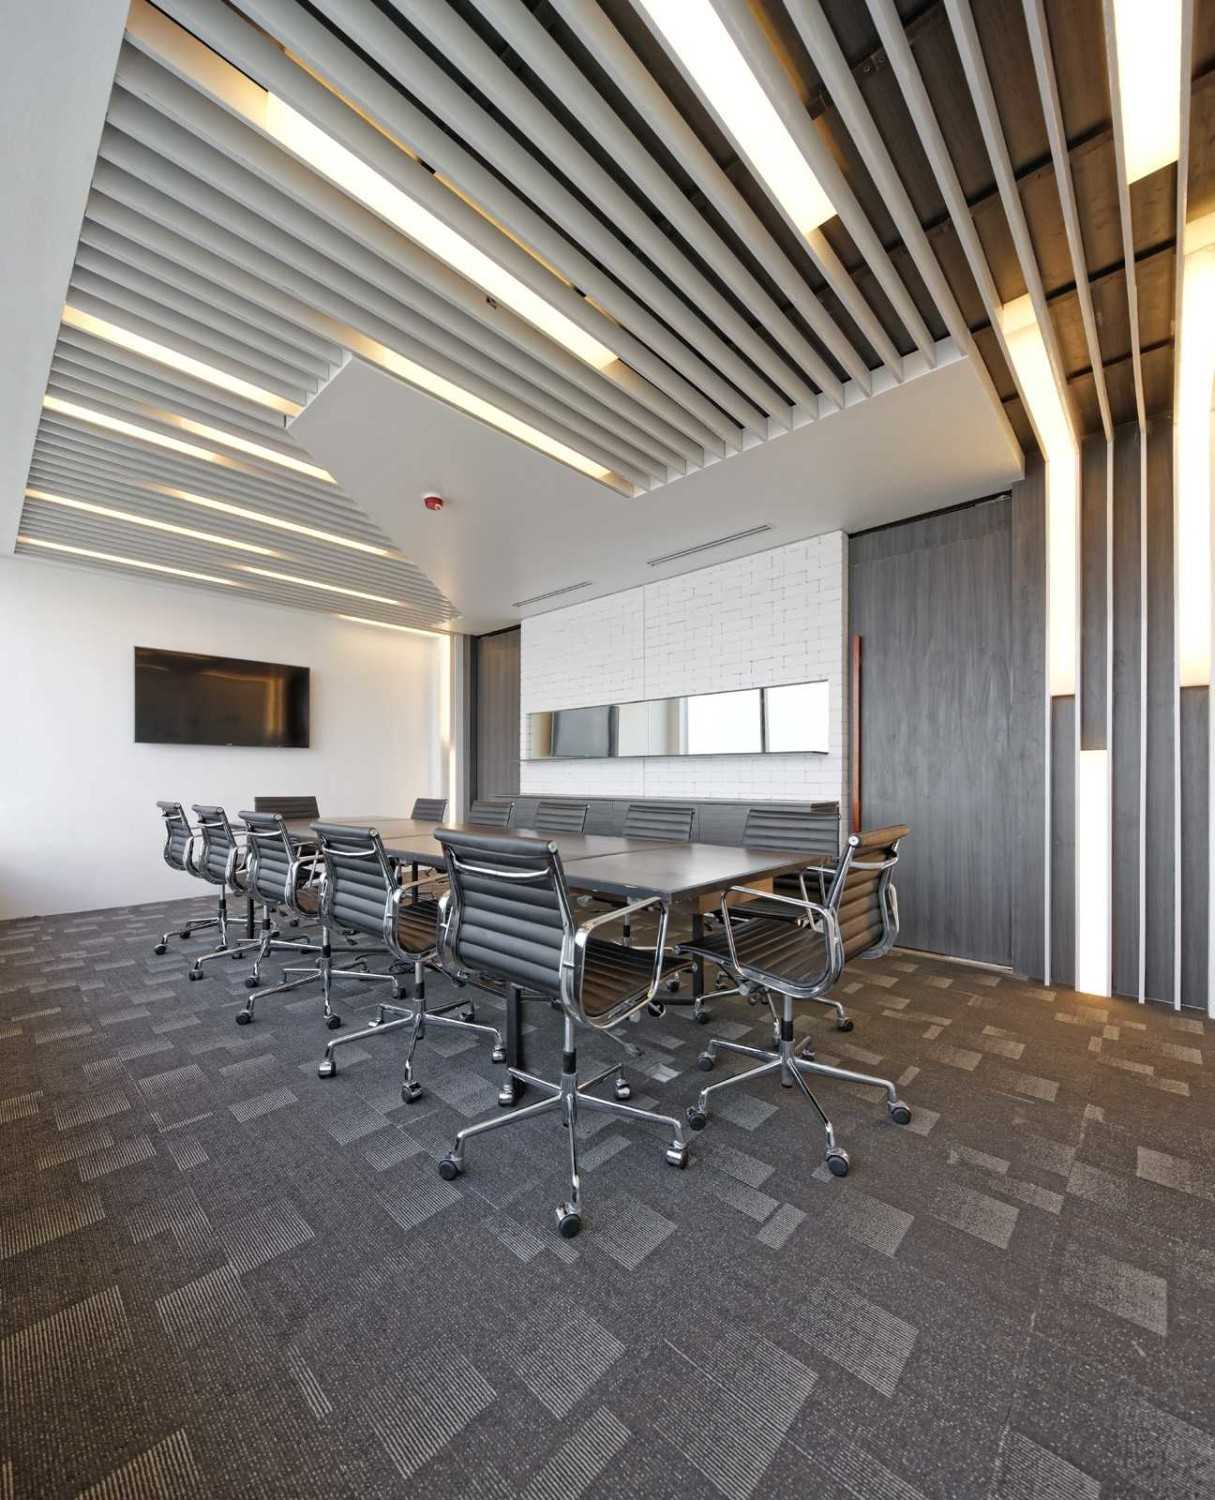 Foto inspirasi ide desain ruang meeting Boardroom area oleh Delution Architect di Arsitag